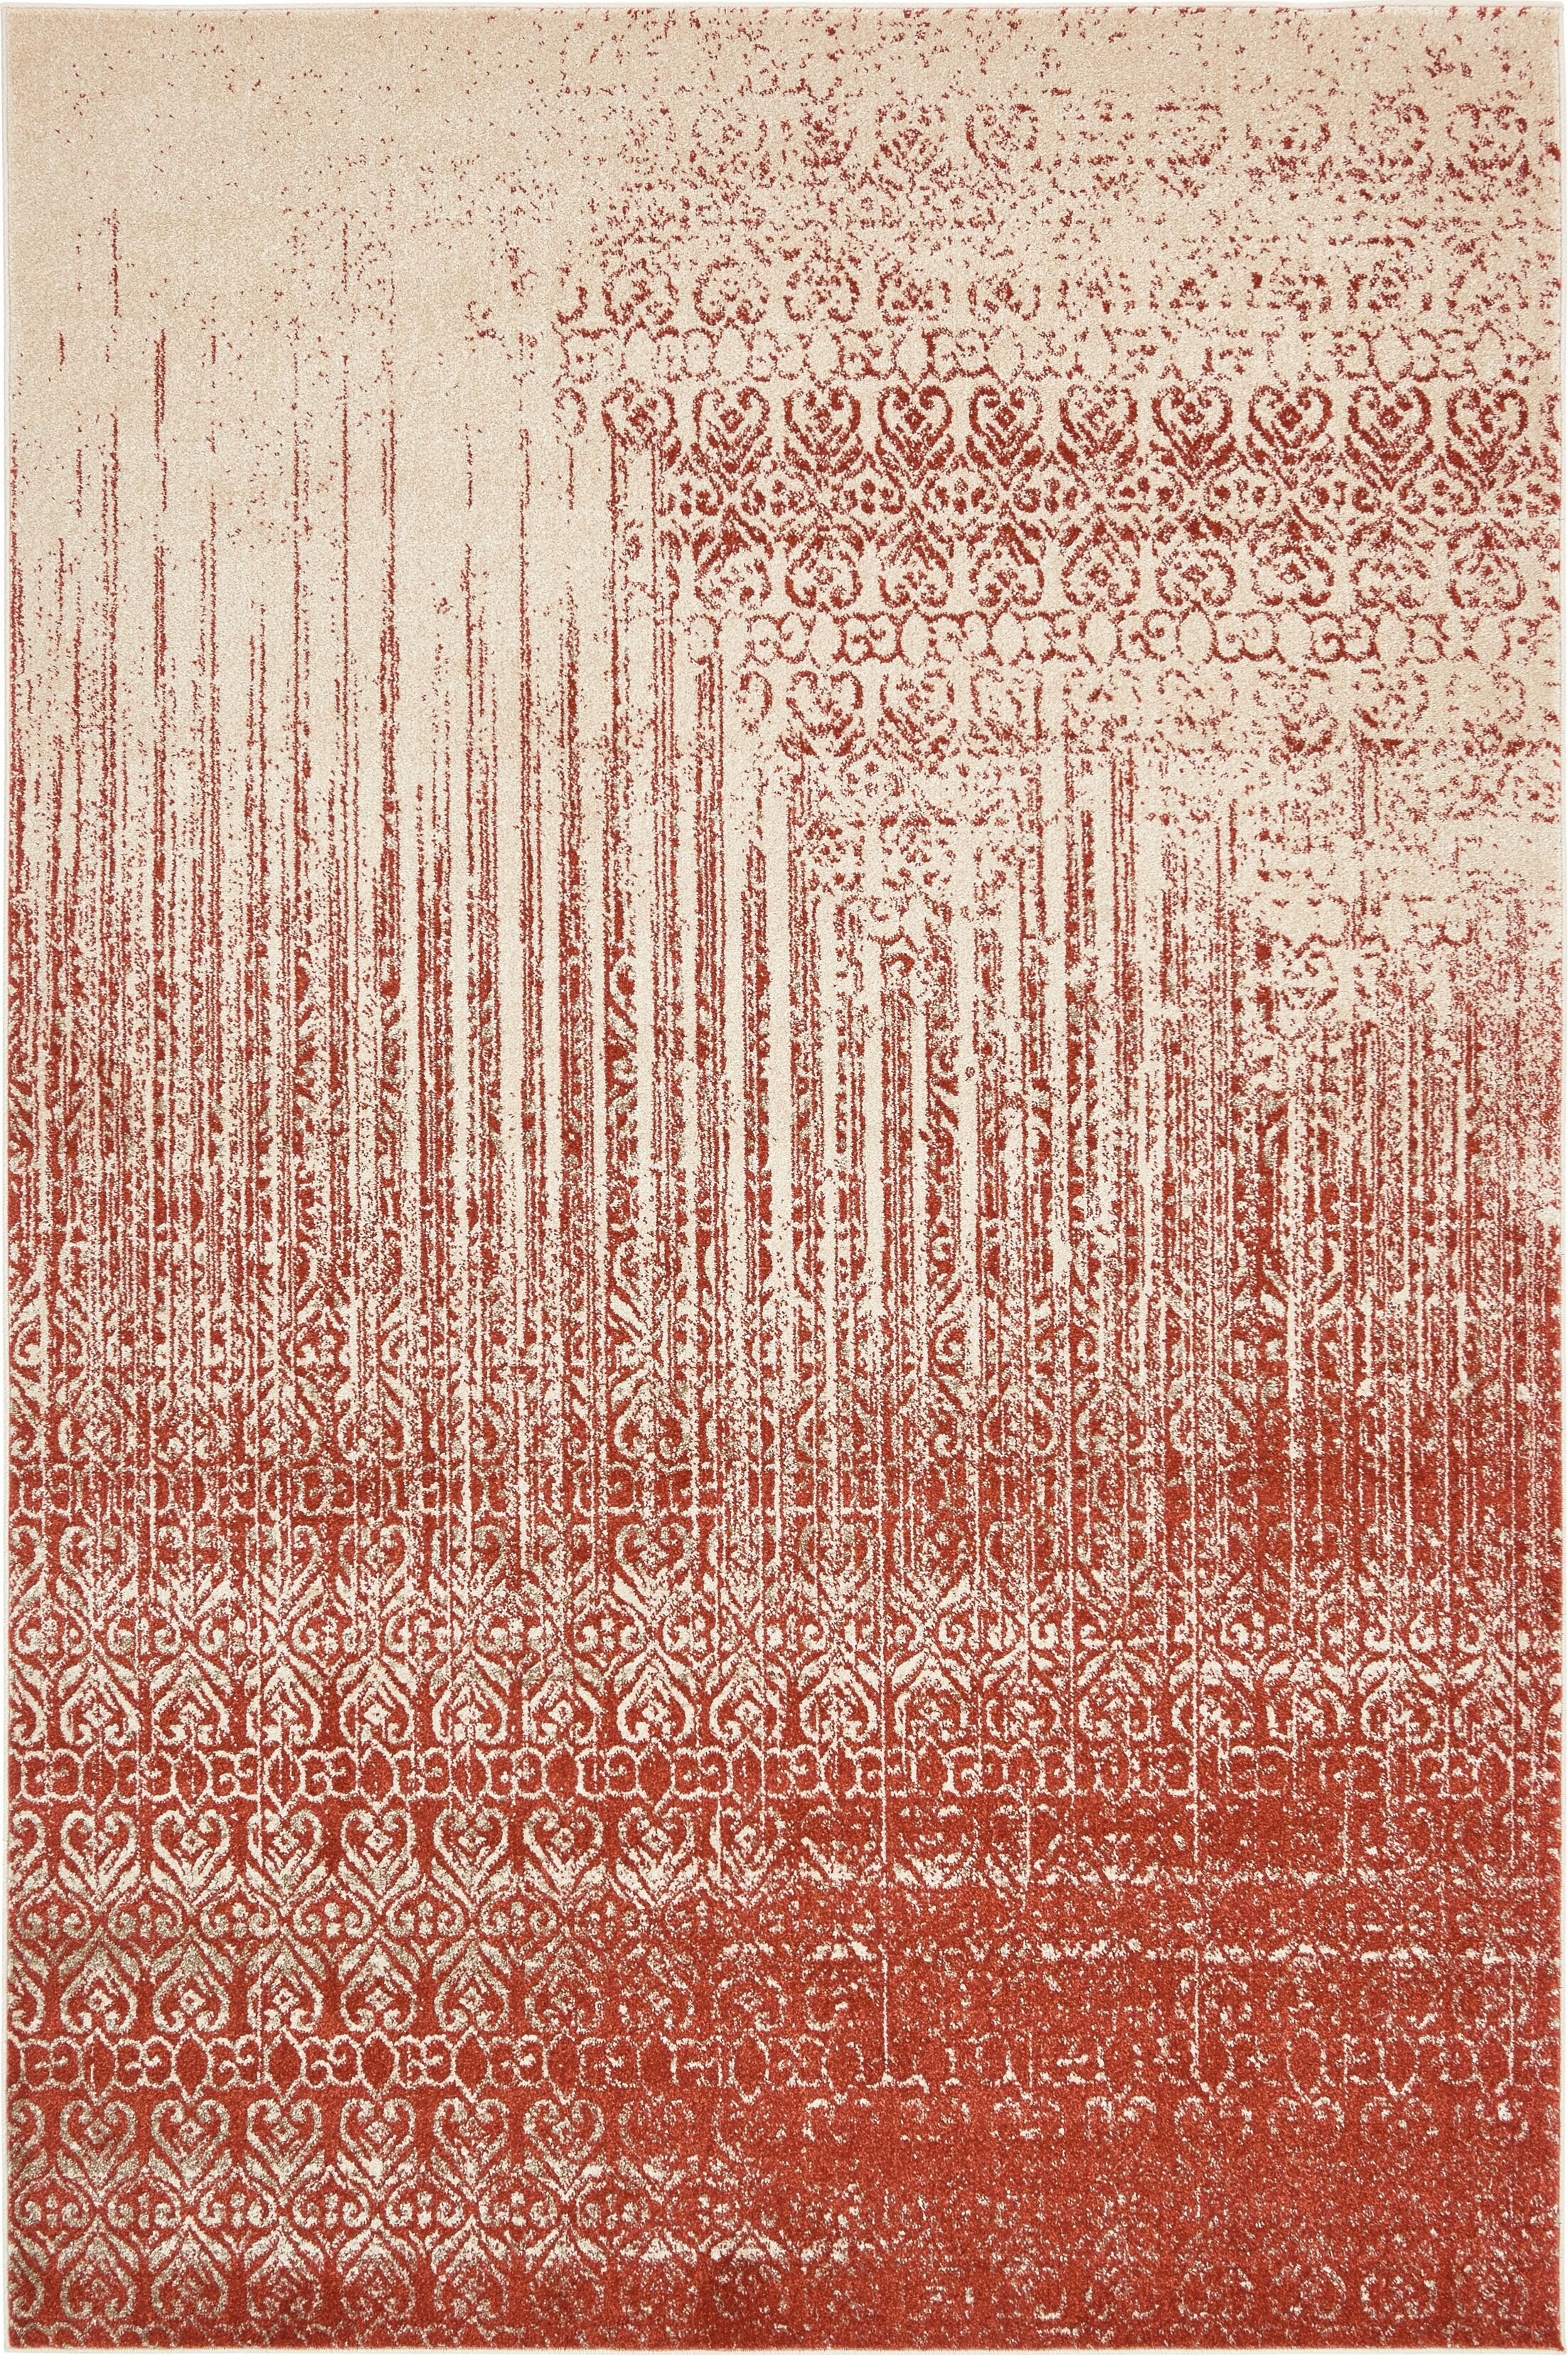 Dungan Red Area Rug Rug Size: Rectangle 6' x 9'